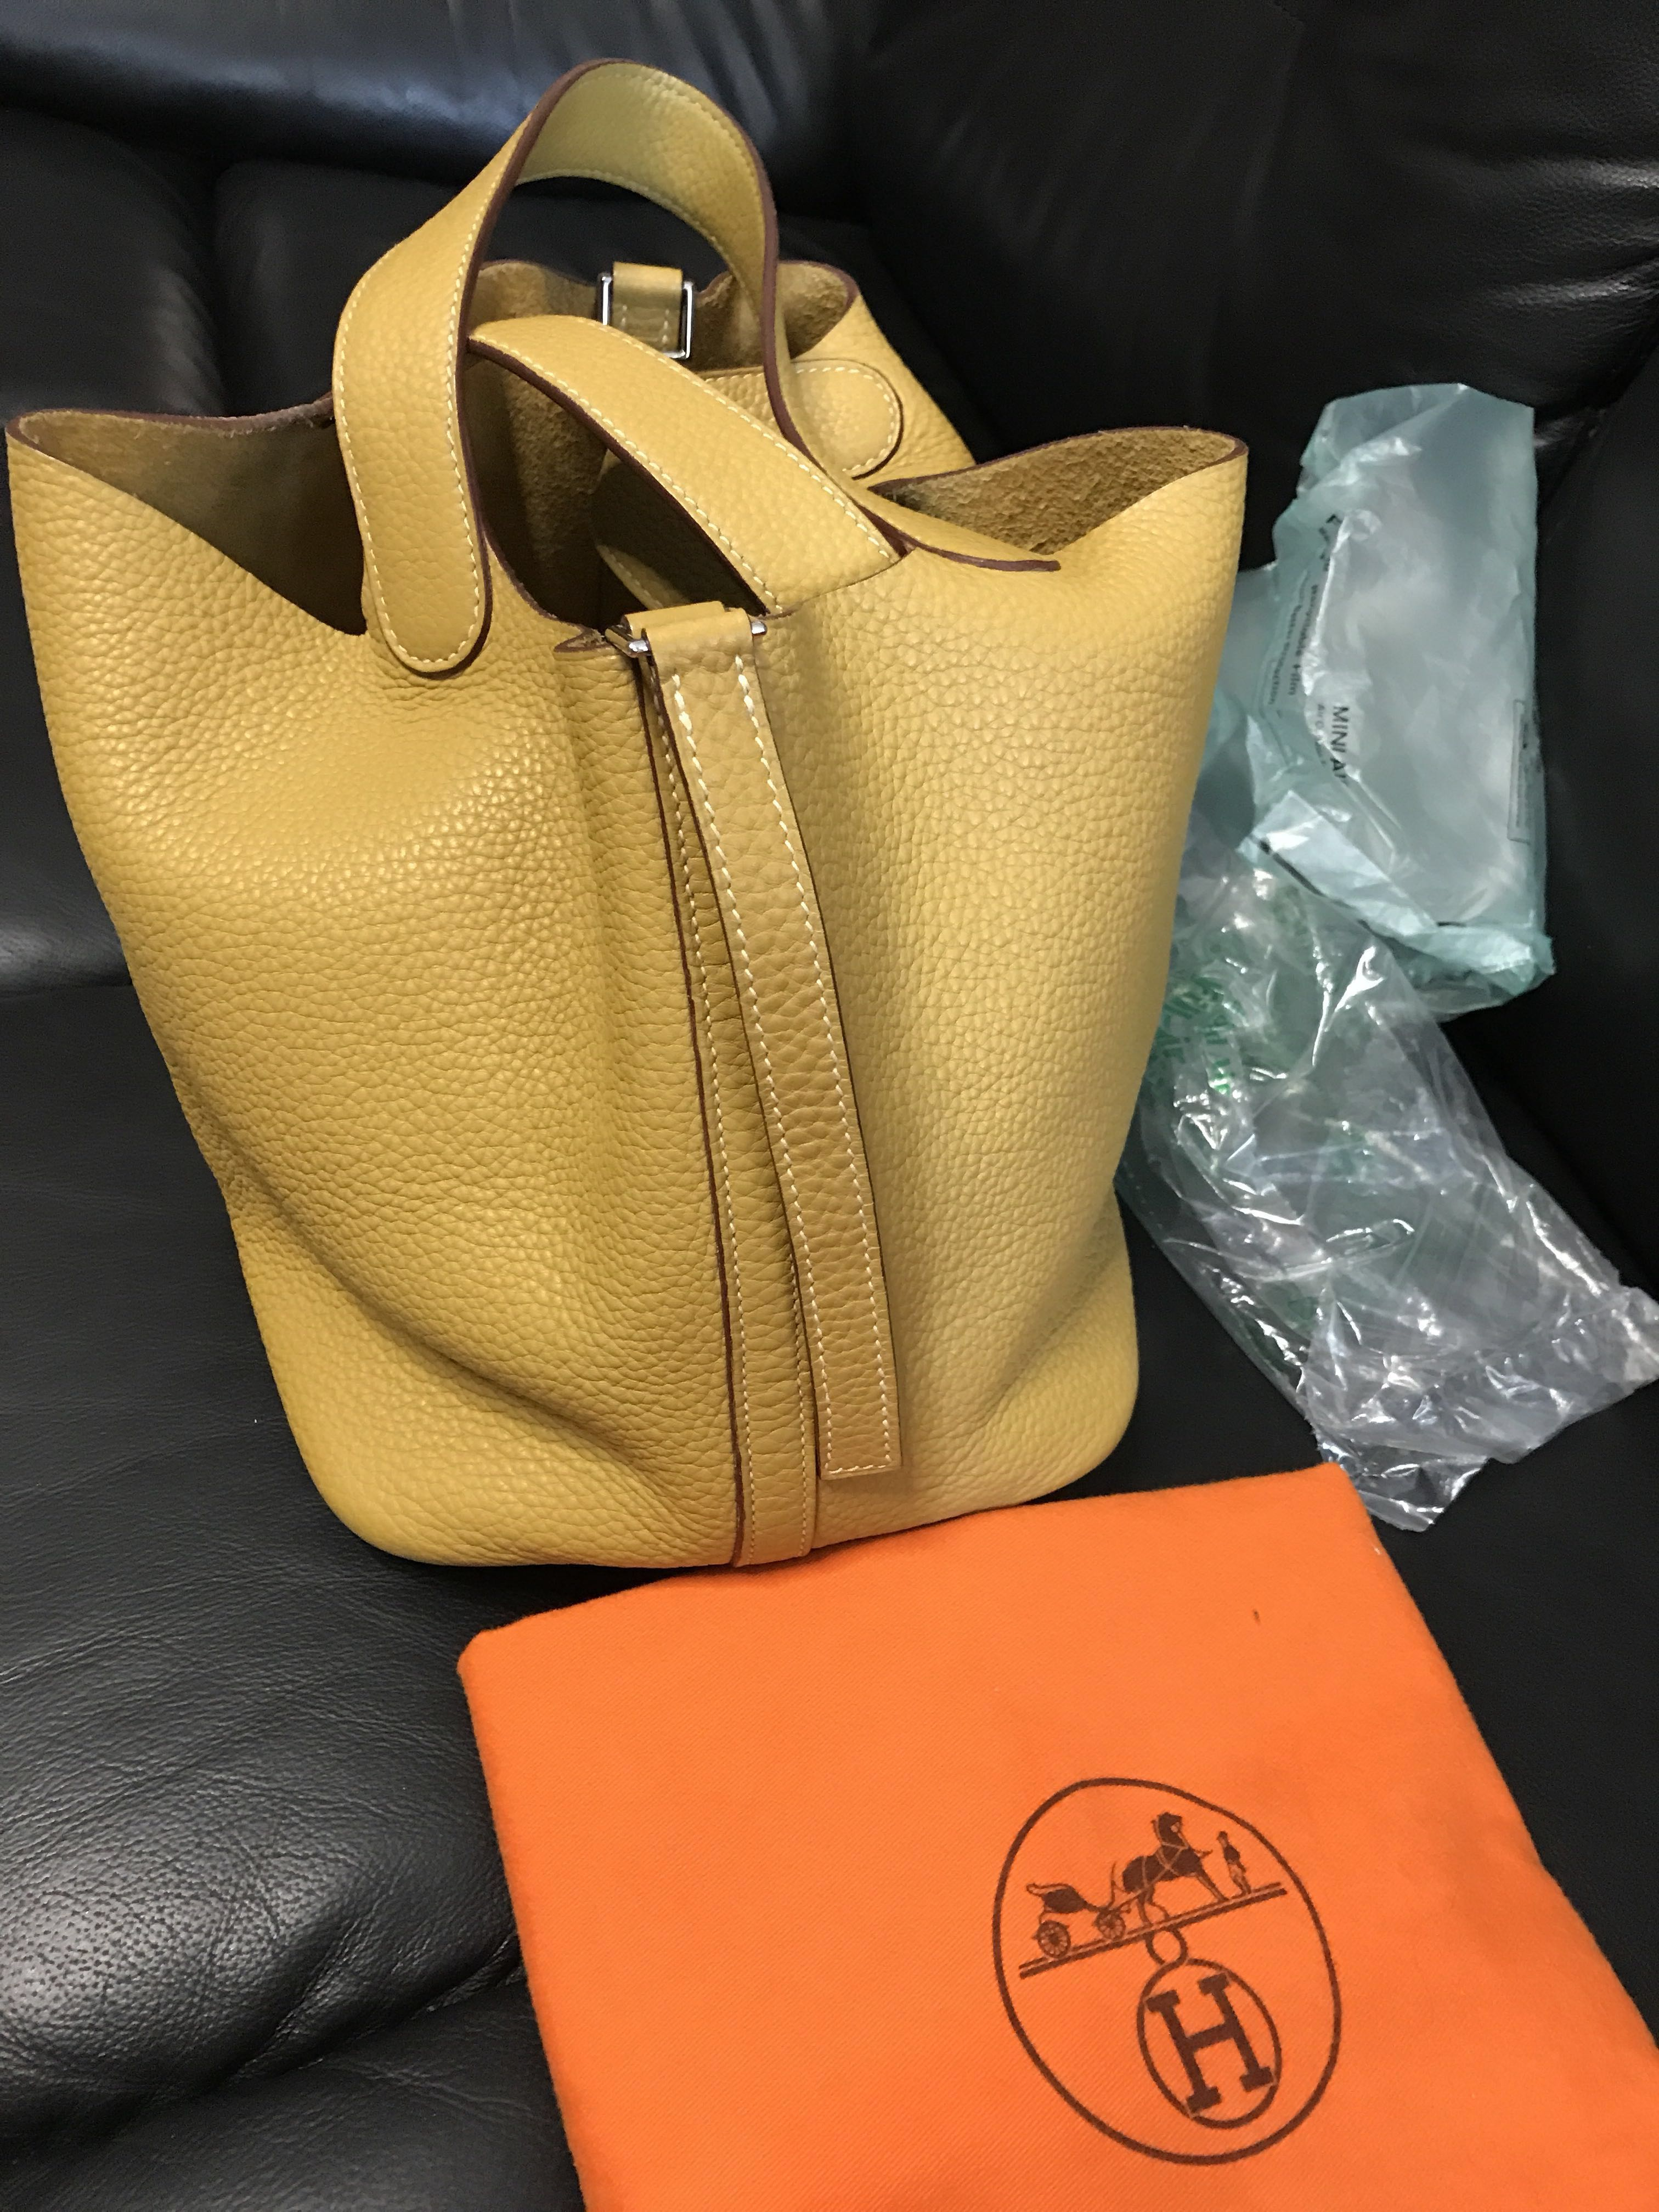 18594dcf00e7 ... france hermes picotin 22 jaune curry phw l luxury bags wallets handbags  on carousell 9266f c7add